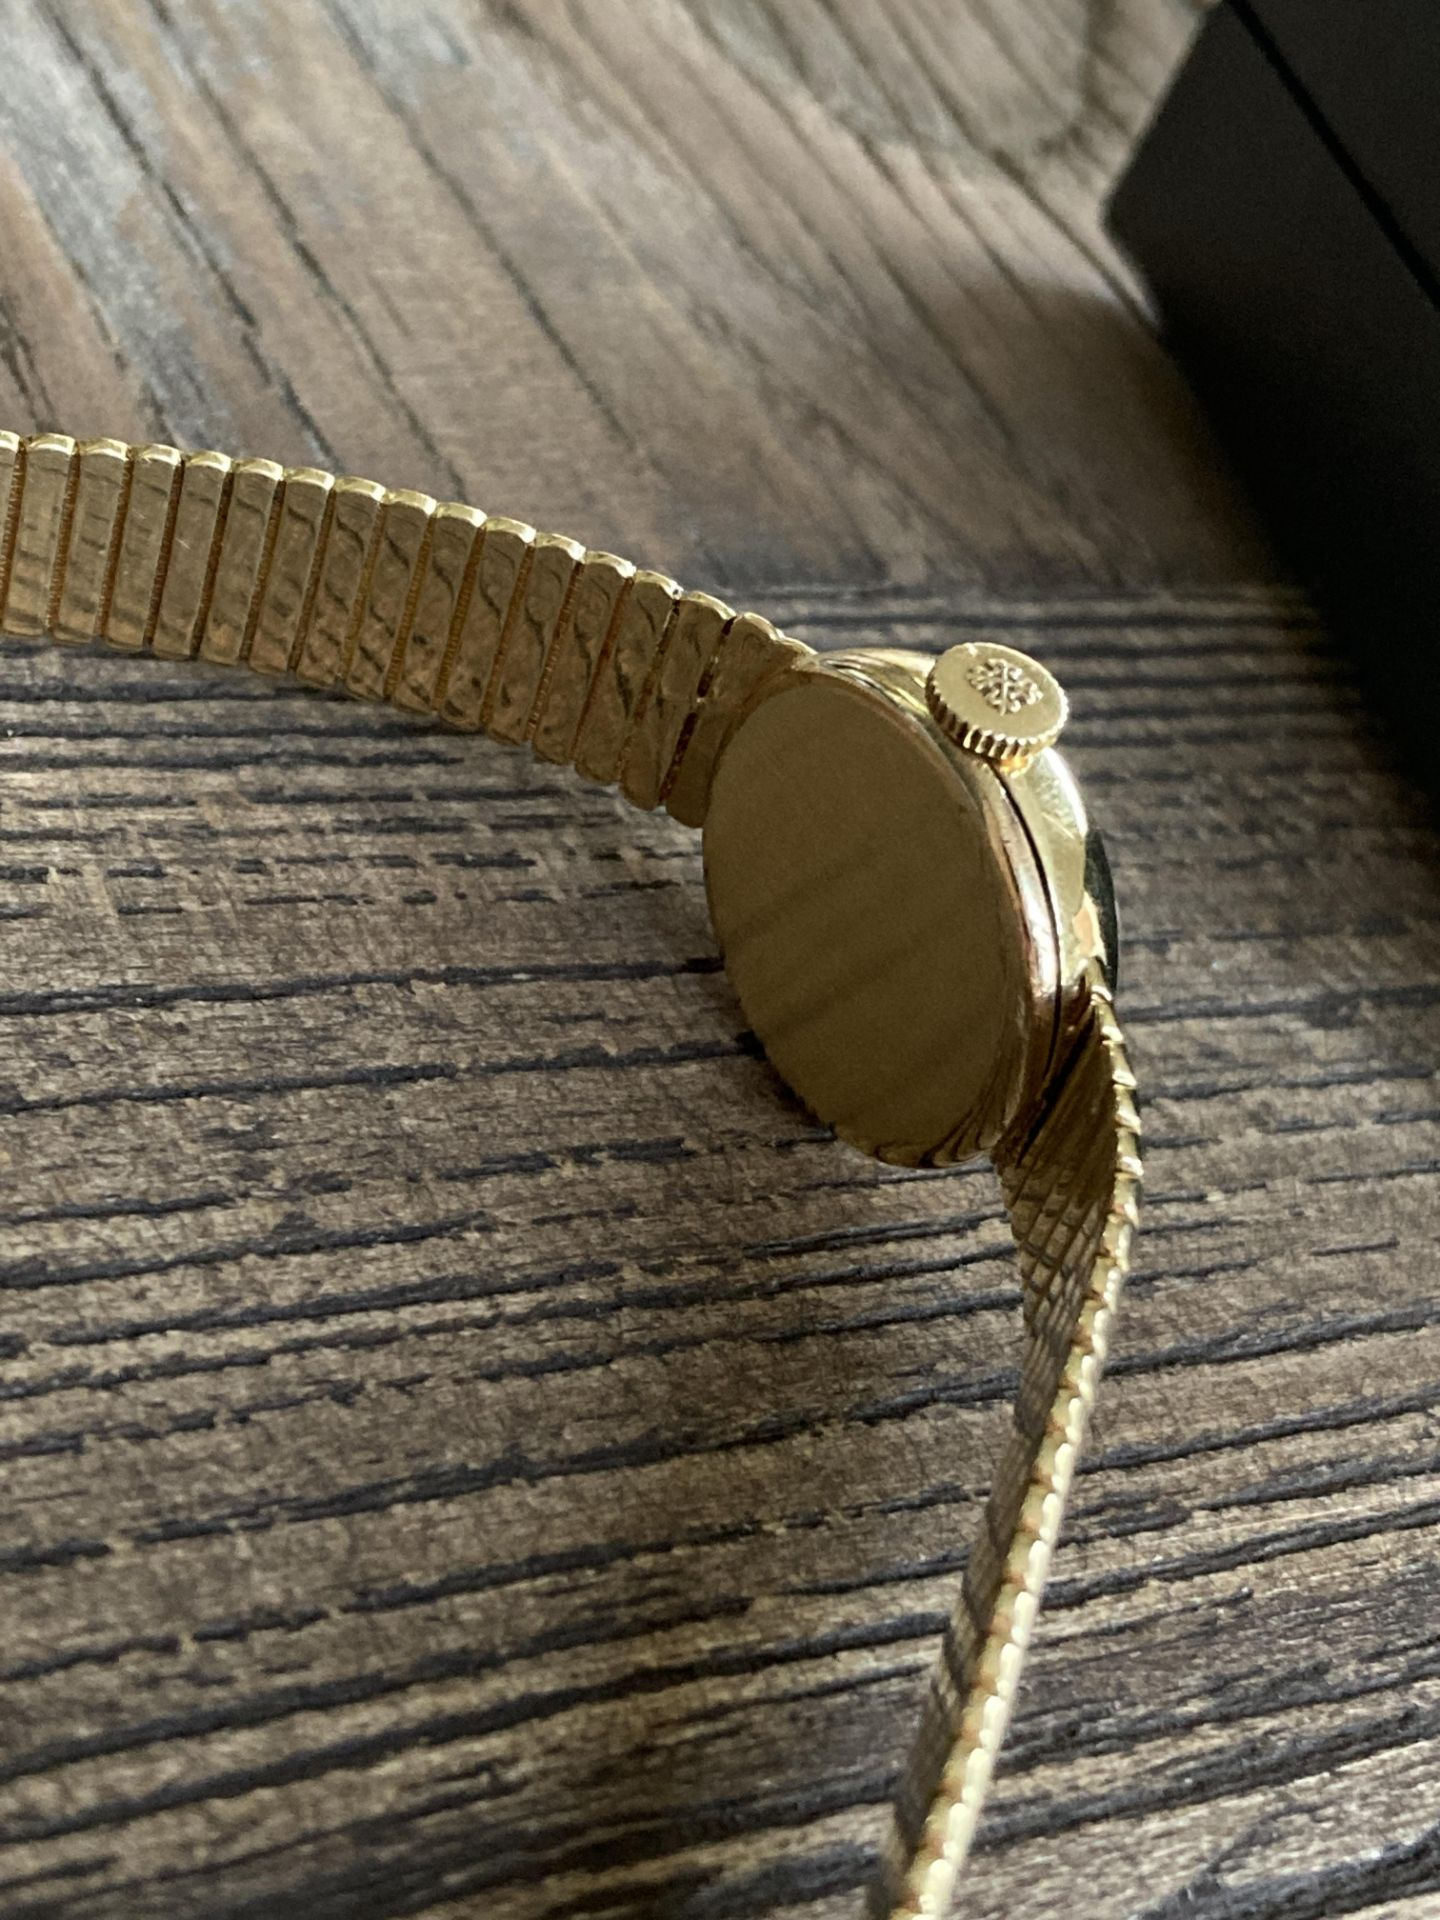 PATEK PHILIPPE 18CT YELLOW GOLD WATCH (WEIGHT: 34.1G) CASE SIZE 20MM APPROX - Image 5 of 6